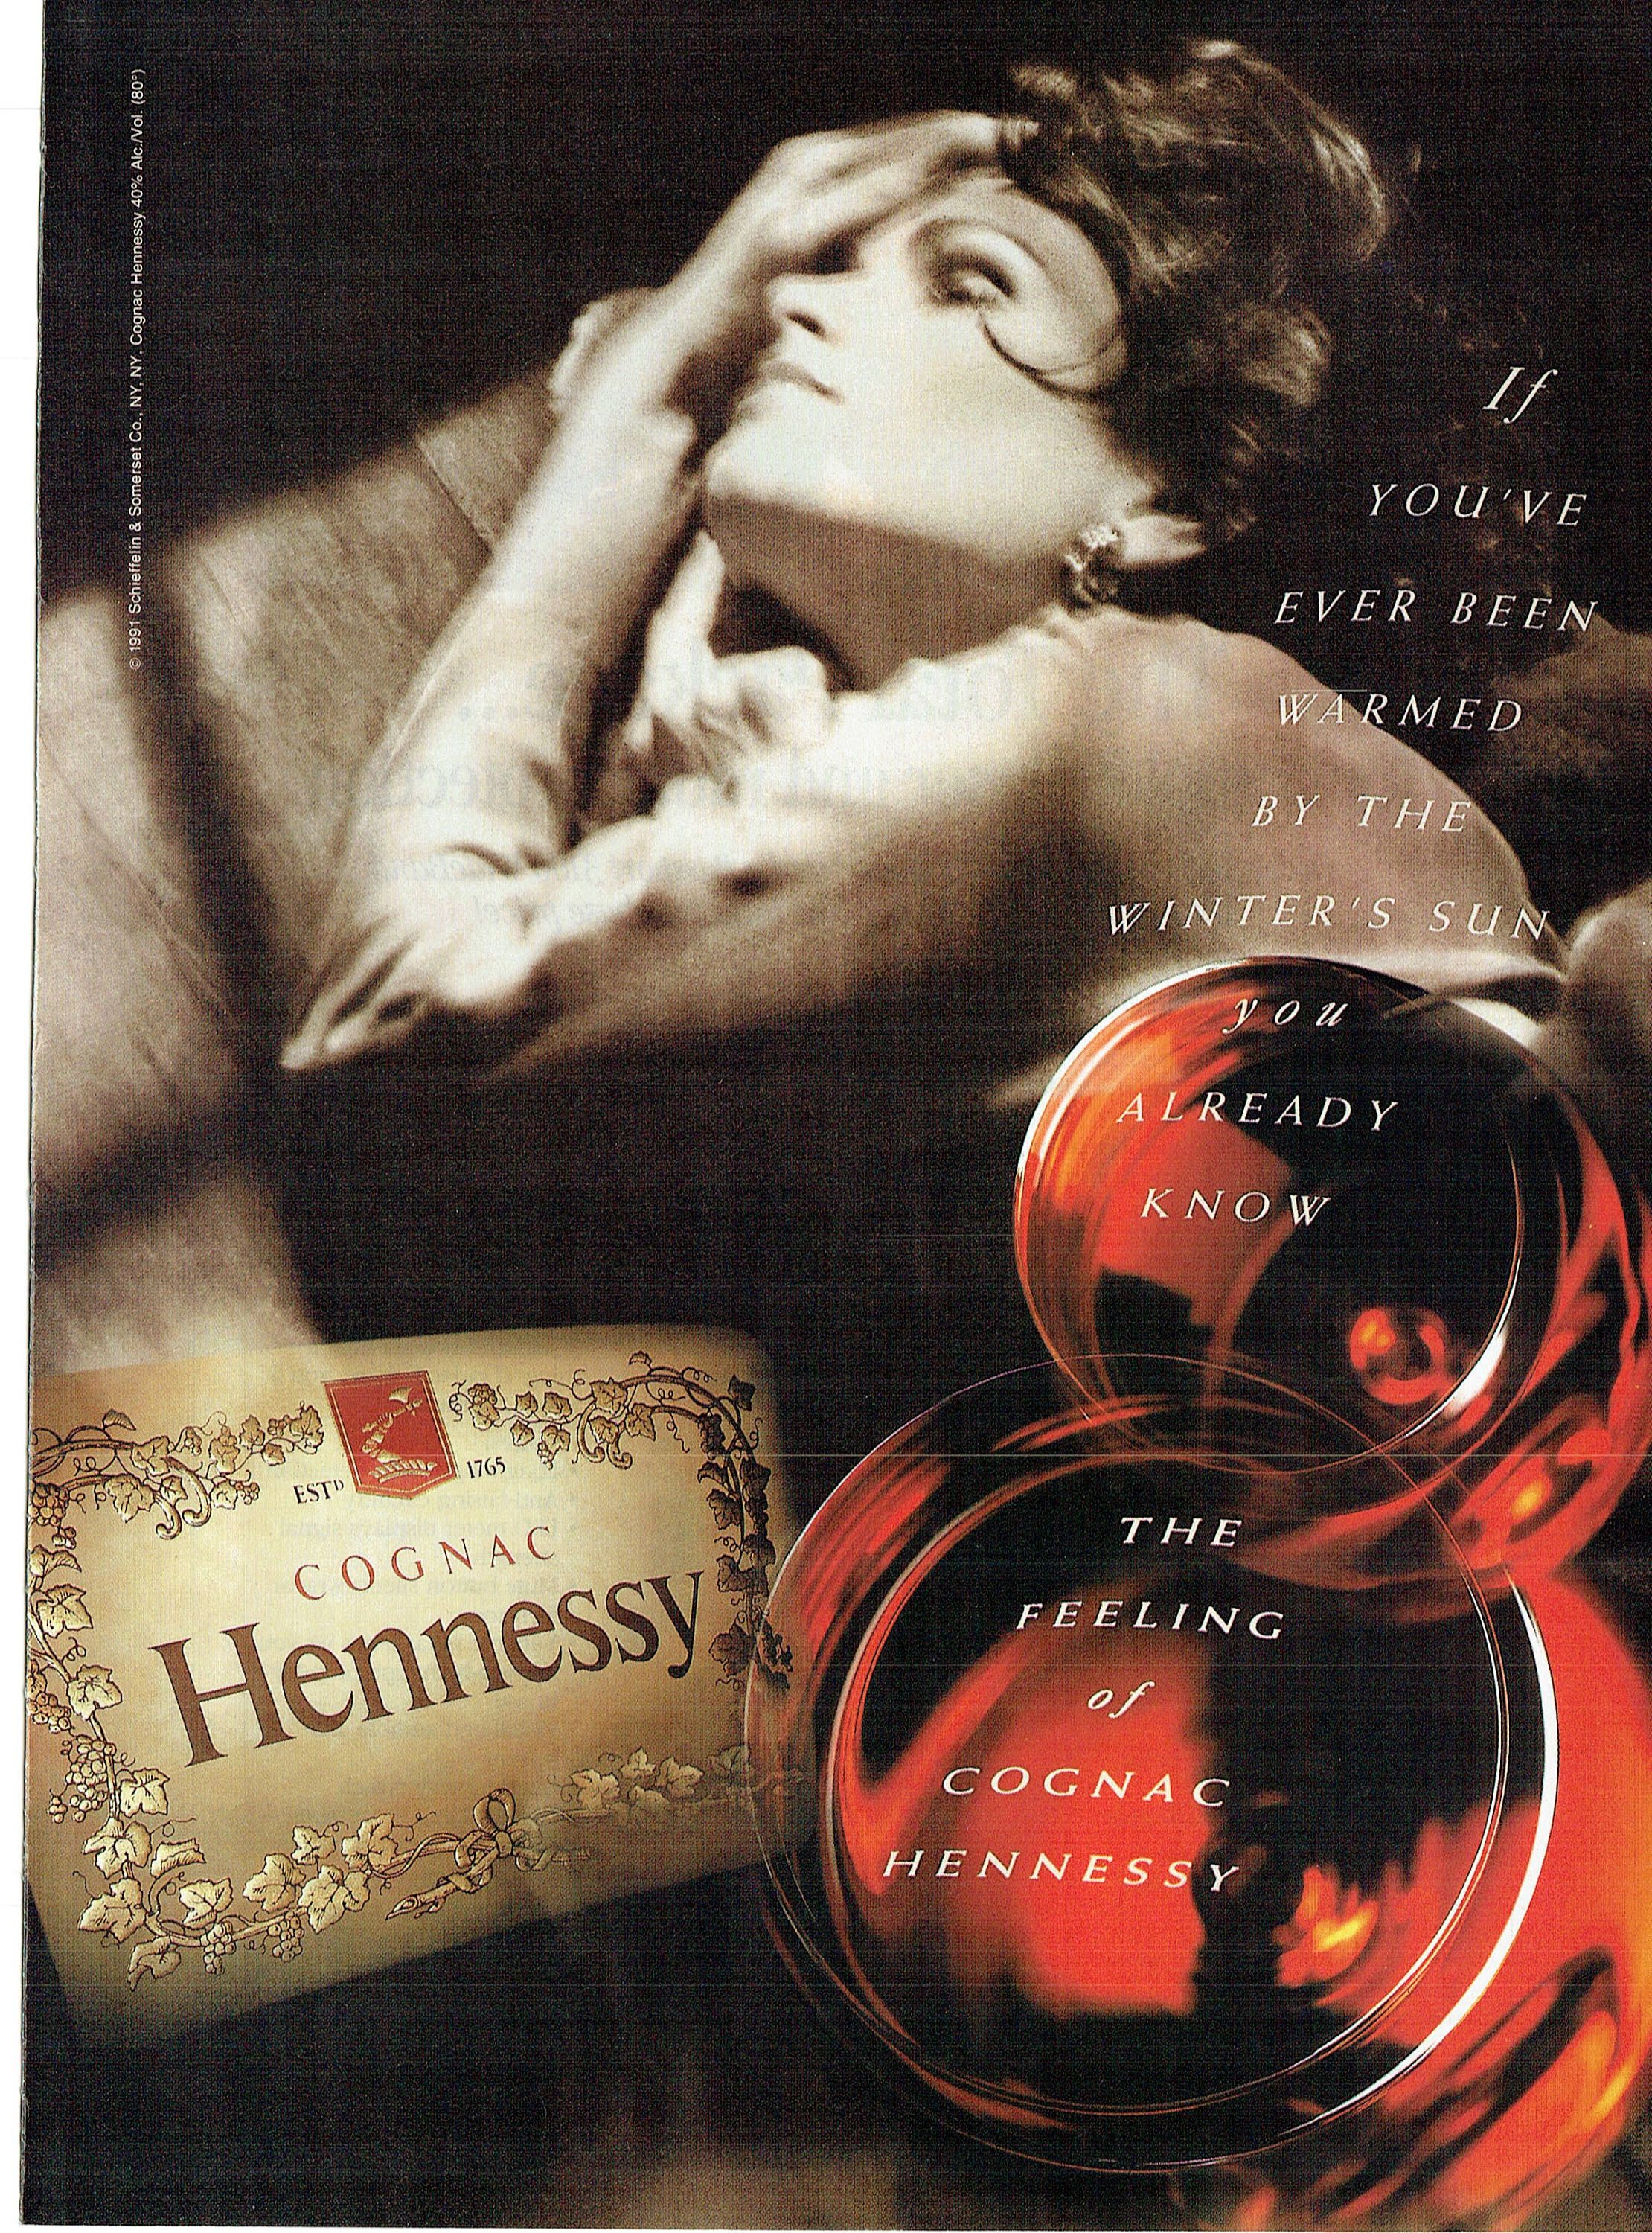 1995 Advertisement Hennessy Cognac 90 S Warmed By The Winter S Sun Drinker Brand Bar Pub Restaurant Wall Art Decor Hennessy Winter Sun Beer Advertising